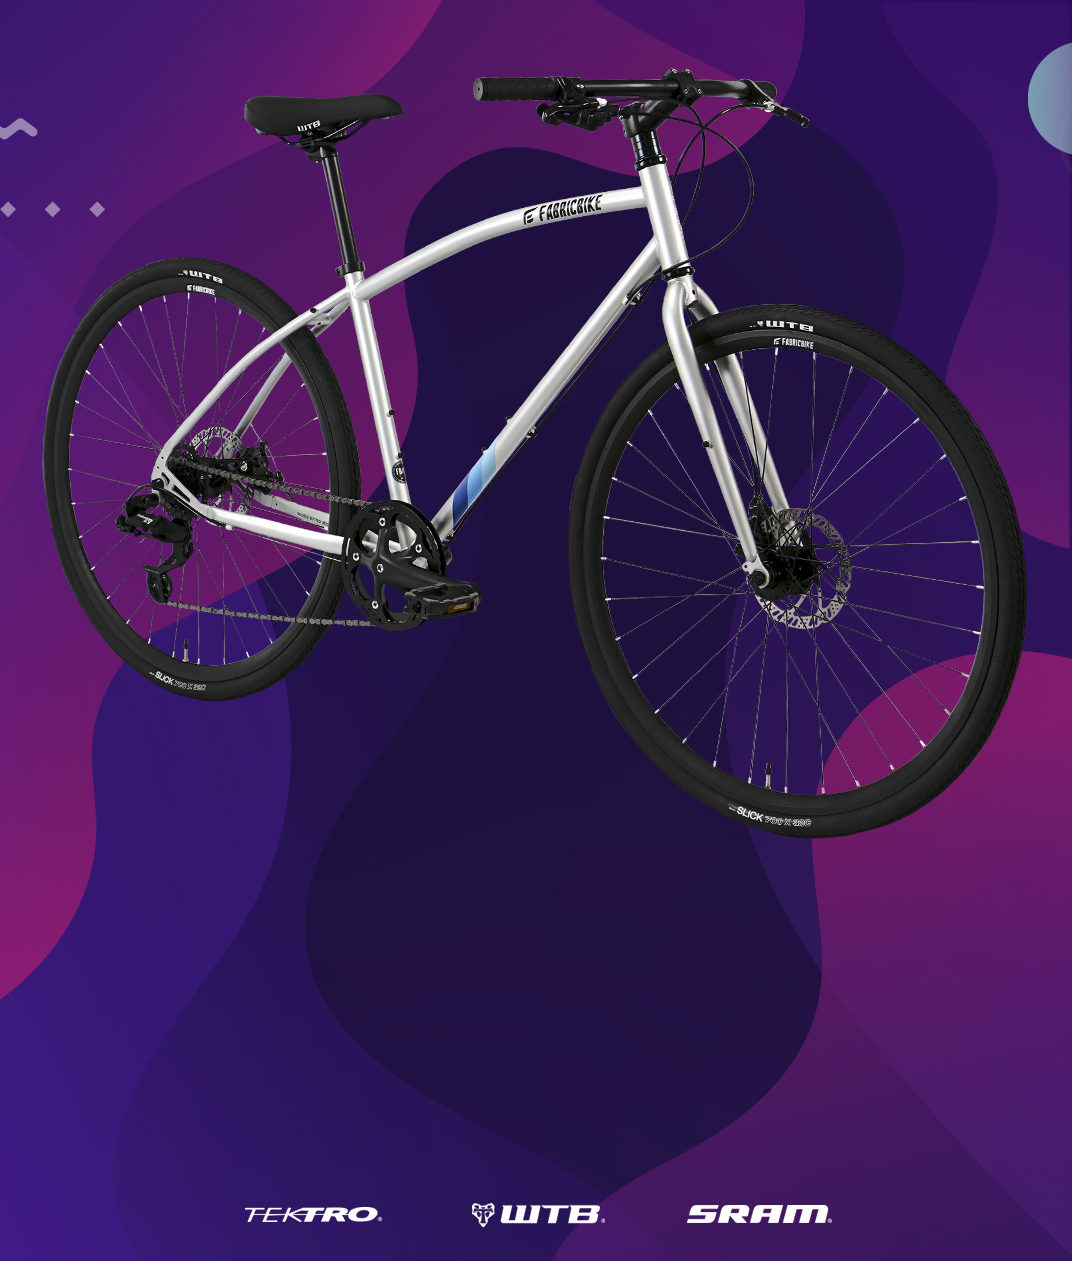 BANNER-FABRICBIKE-COMMUTER-2-mobile